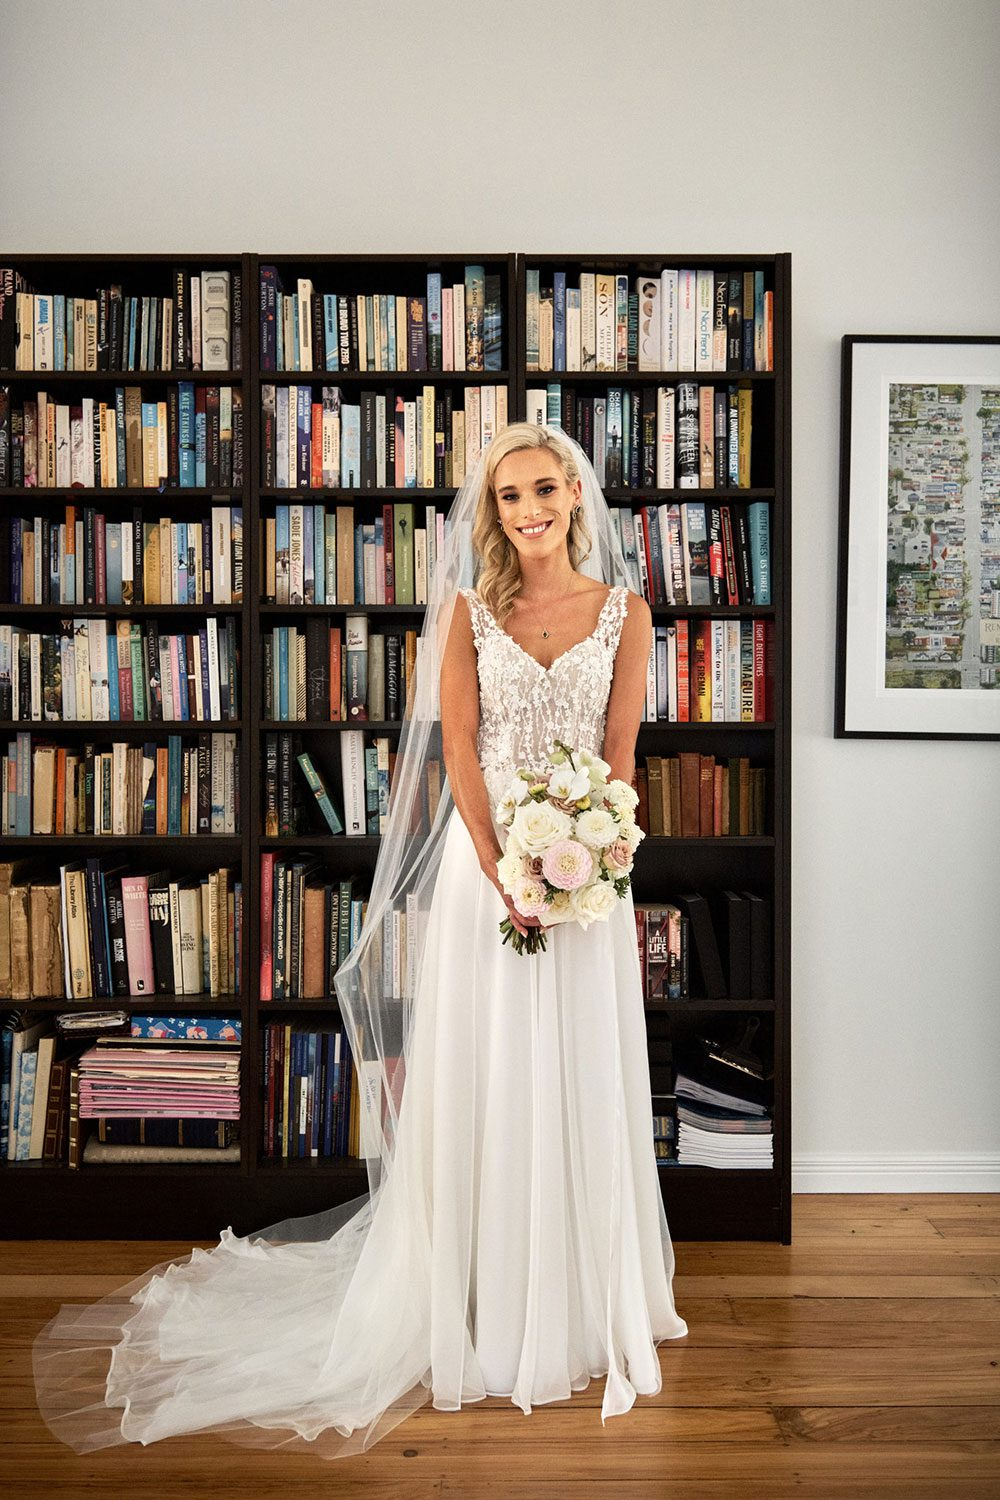 Bride wearing bespoke gown made of silk chiffon with delicate flower lace bodice by Vinka bridal designer Auckland - in front of bookshelf